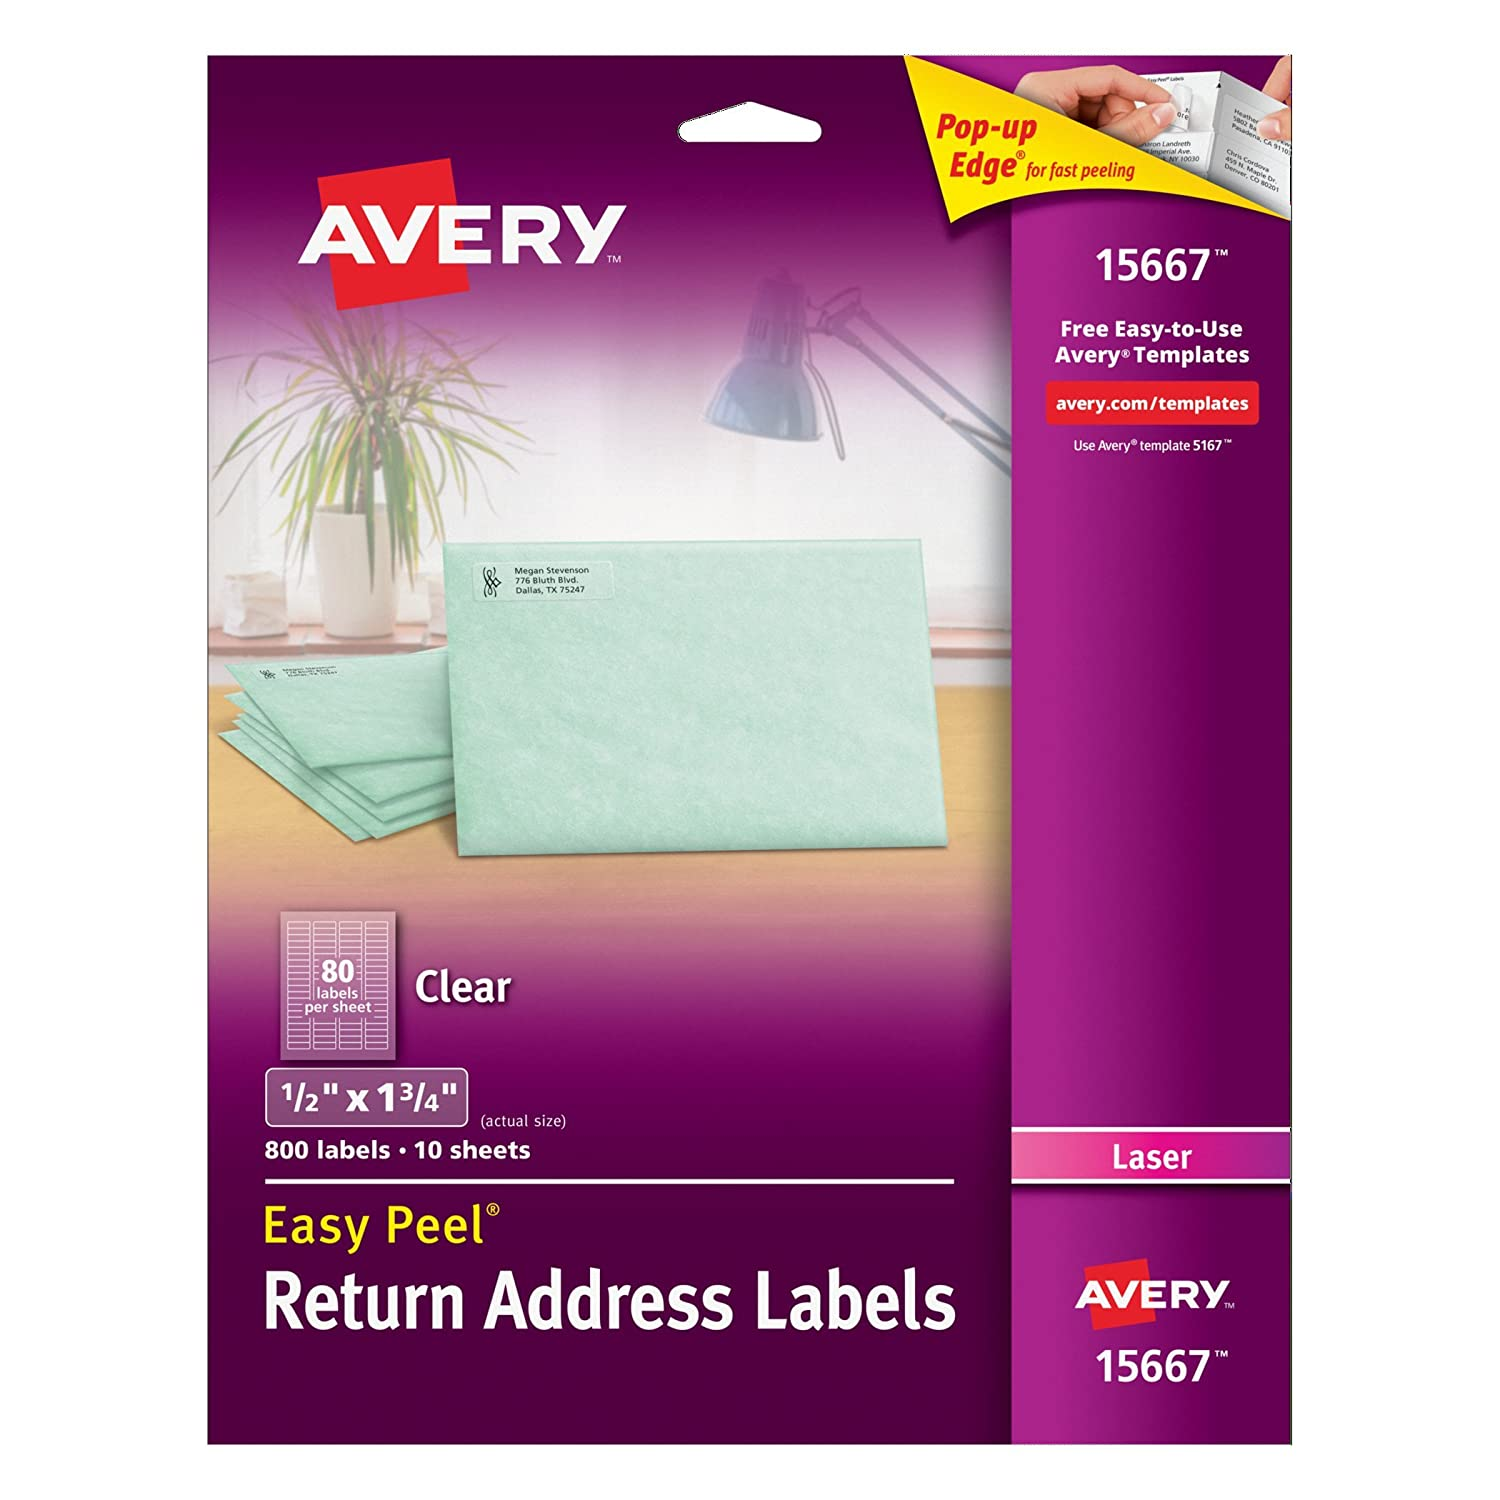 Amazon.com : Avery Clear Easy Peel Return Address Labels for Laser ...